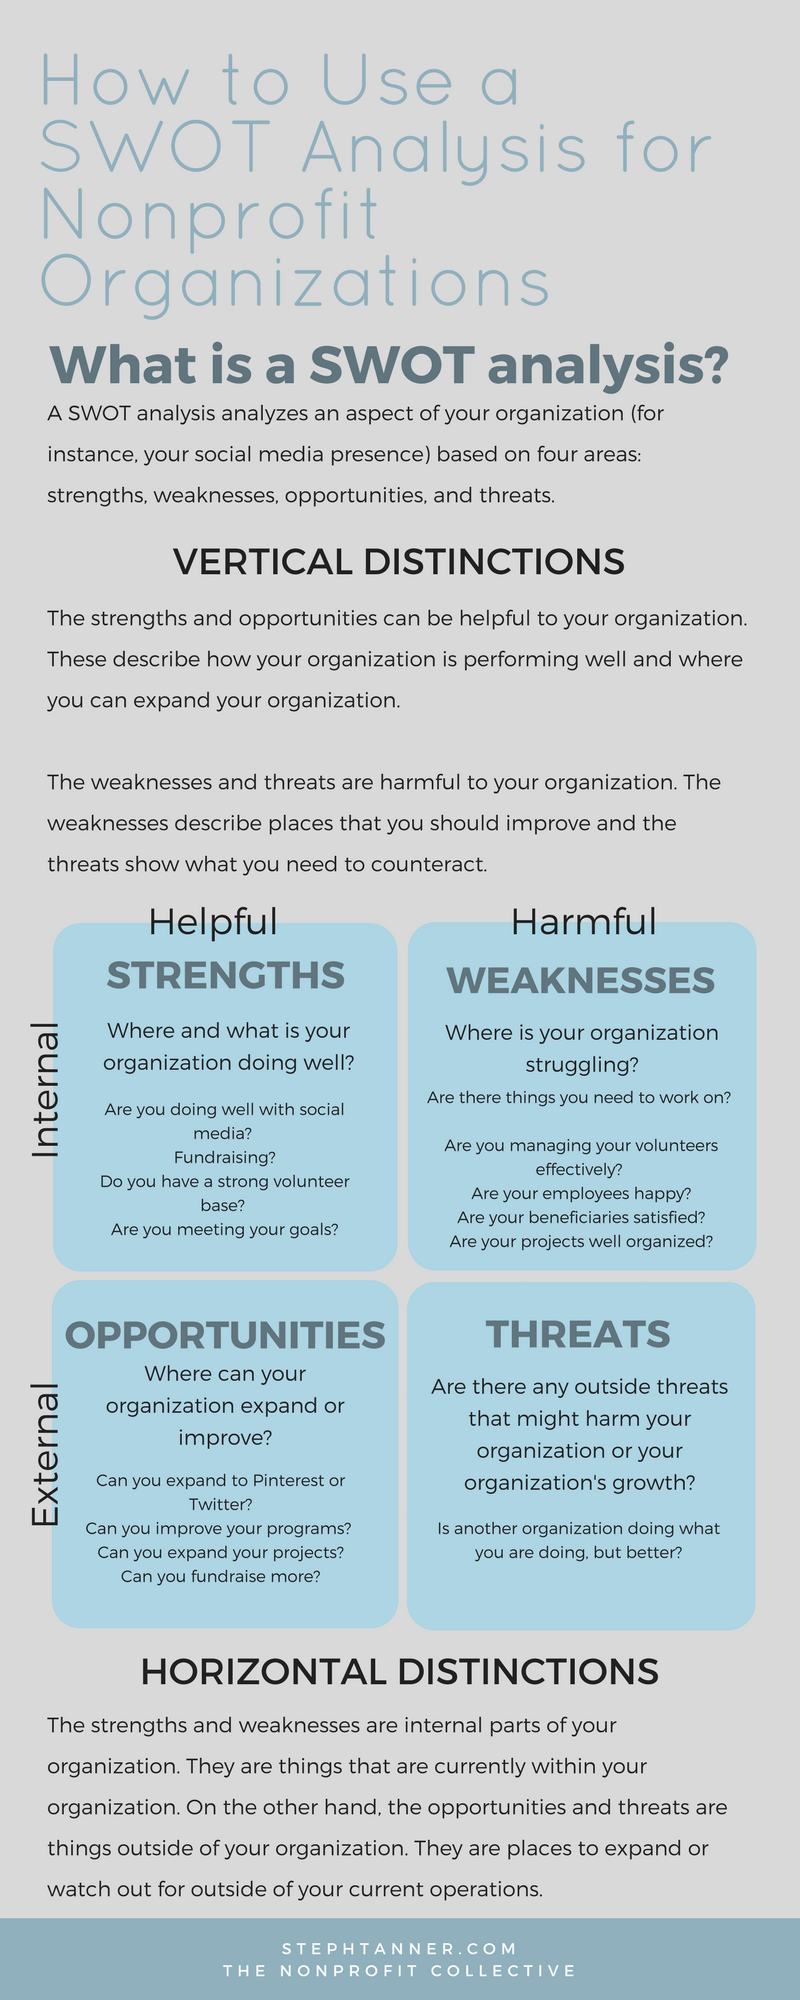 How to use a SWOT Analysis for Your Nonprofit's Social